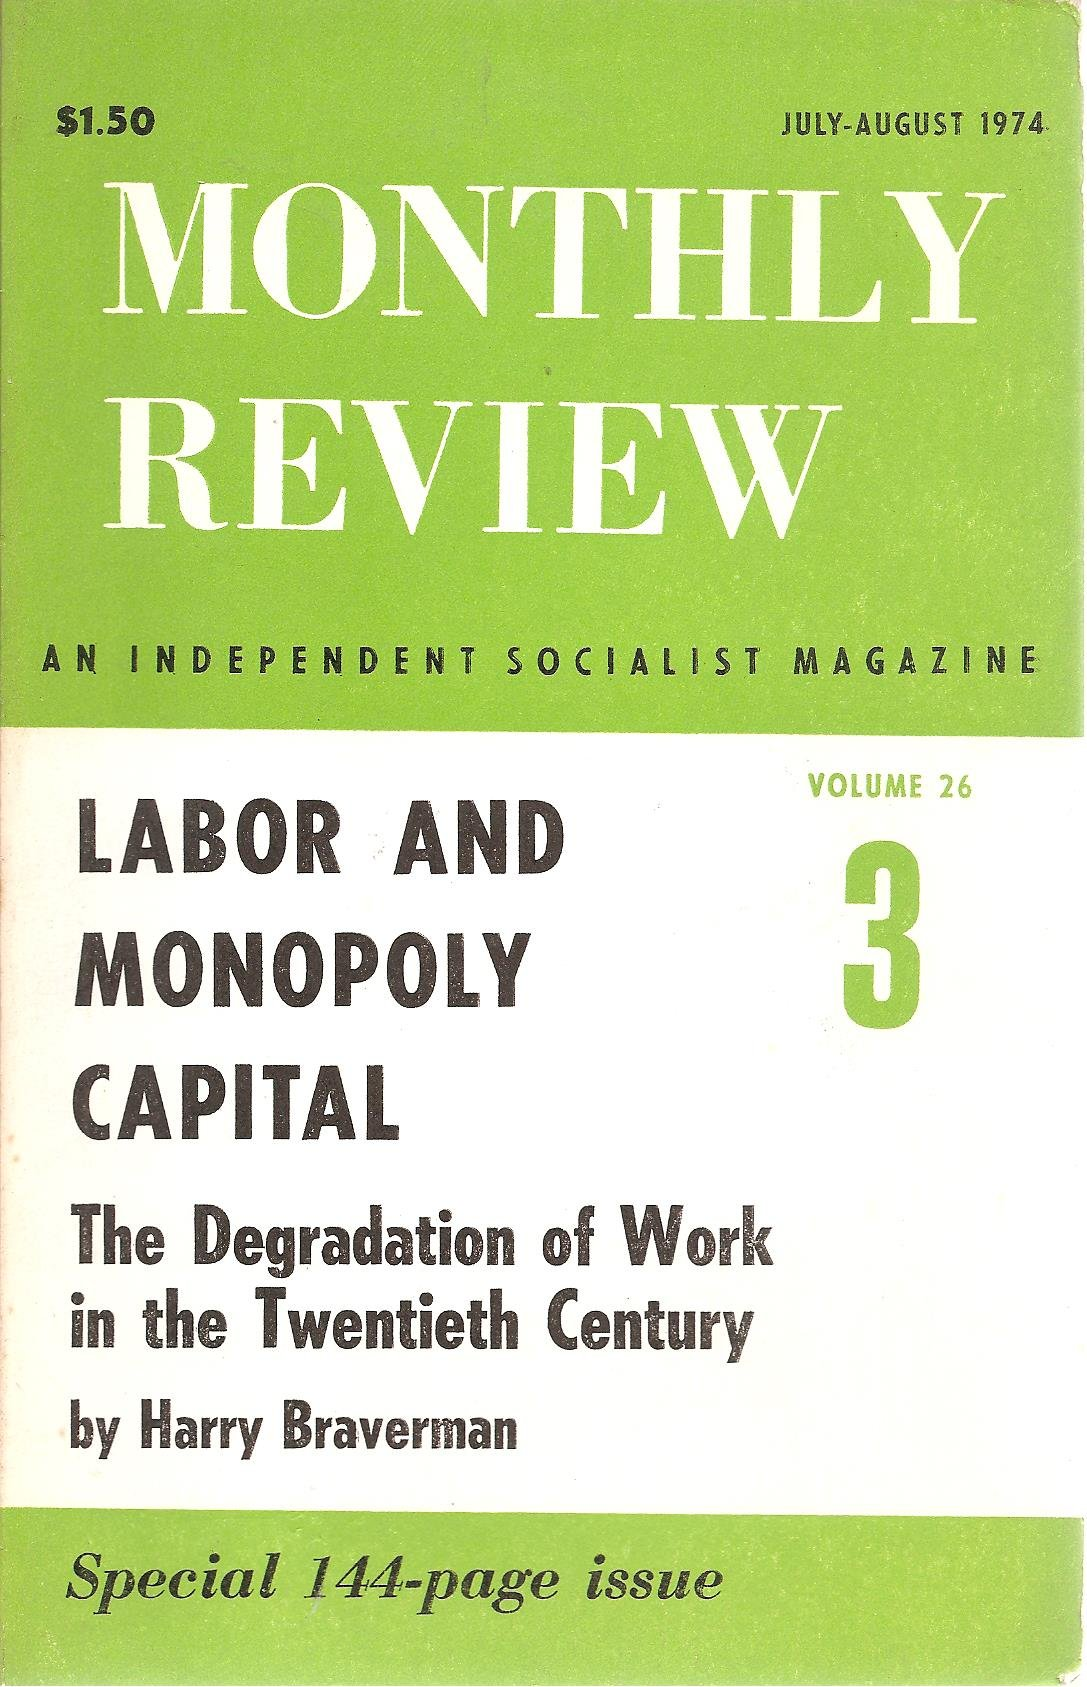 July-August 1974: by Harry Braverman, Degradation of Work SPECIAL 144 PAGE  ISSUE: Labor and Monopoly Capitalism: Amazon.com: Books